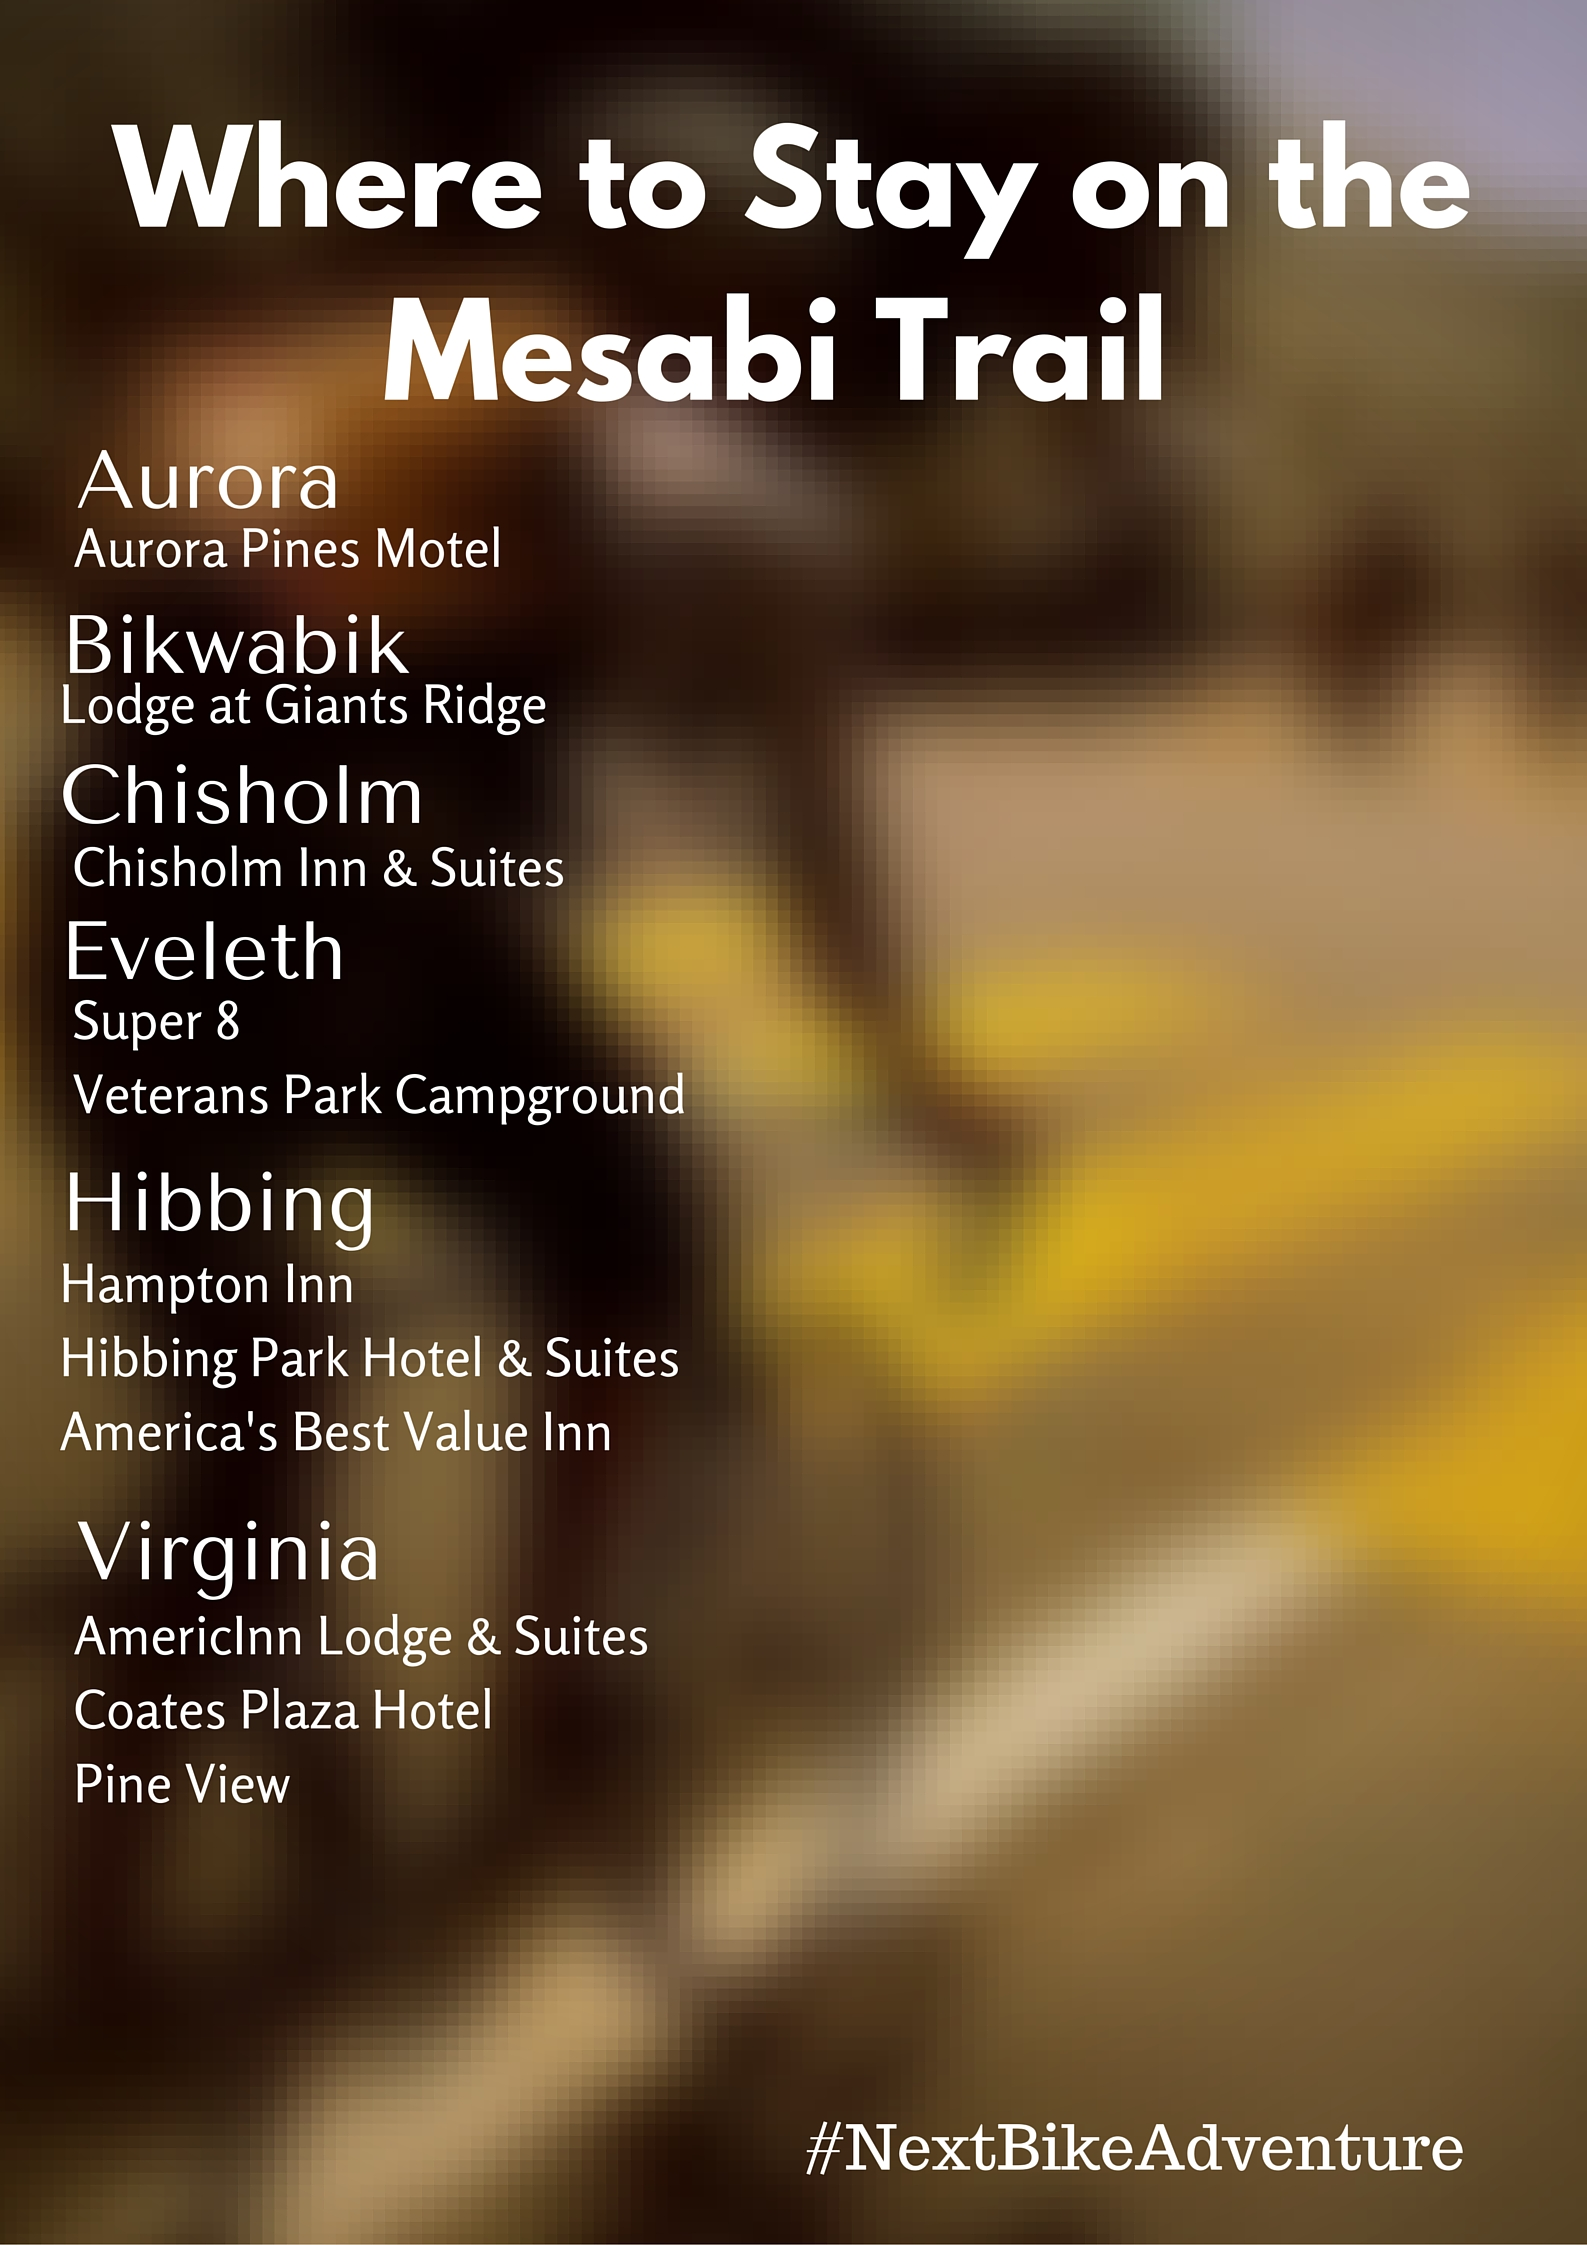 Find Your Next Adventure Biking Mesabi Trail